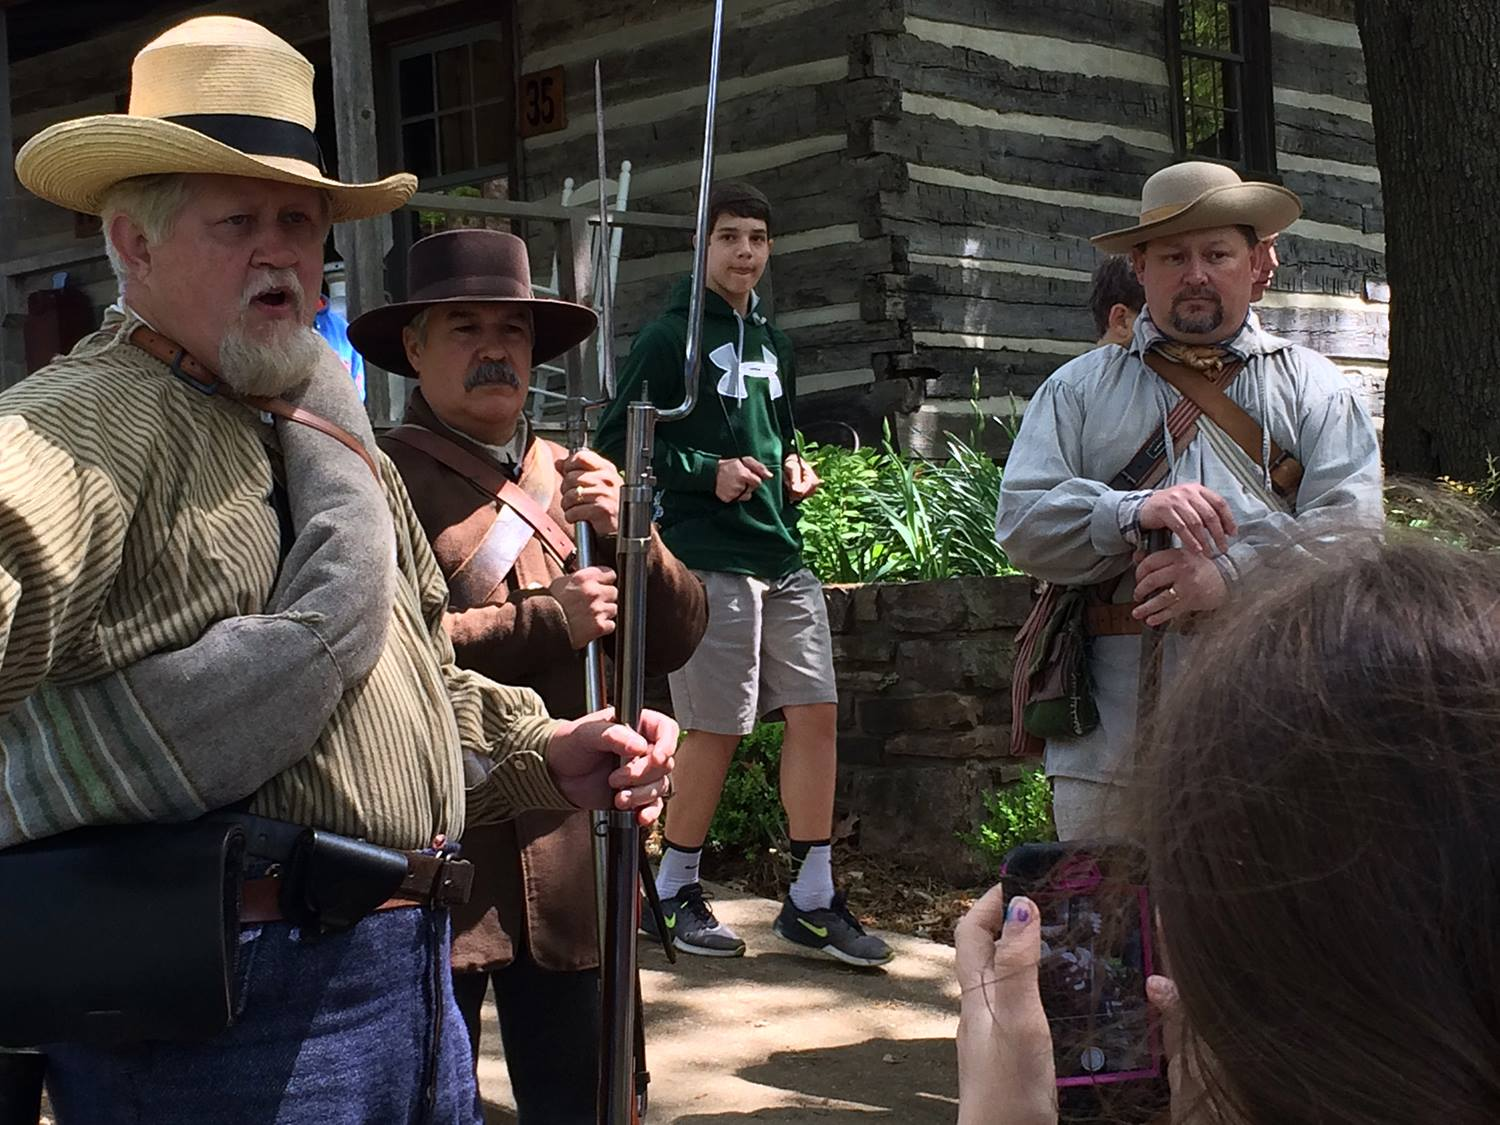 Civil War Days at Har-Ber Village Museum